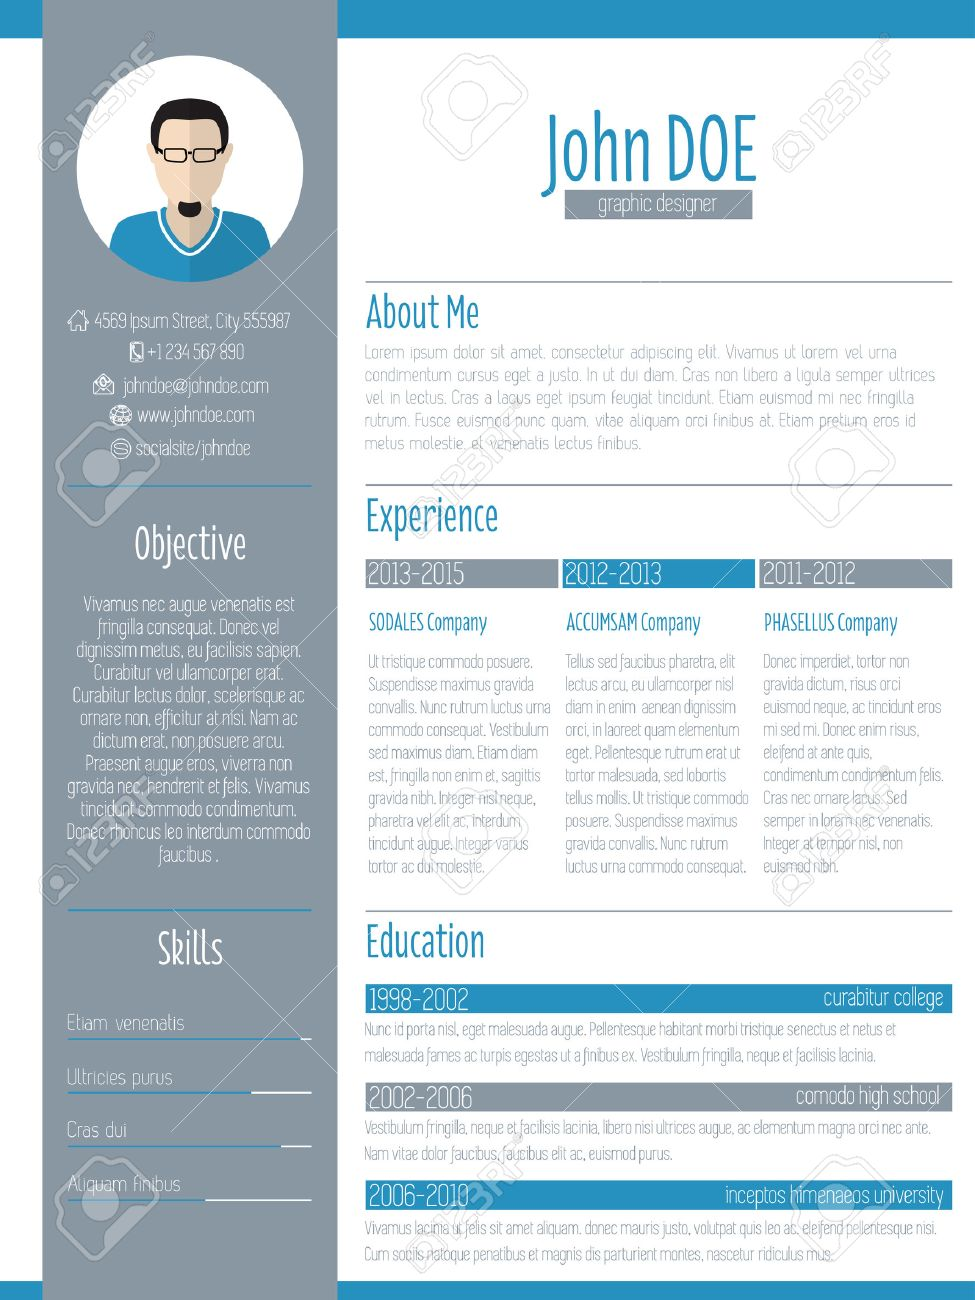 modern resume curriculum vitae cv design photo royalty modern resume curriculum vitae cv design photo stock vector 37490988